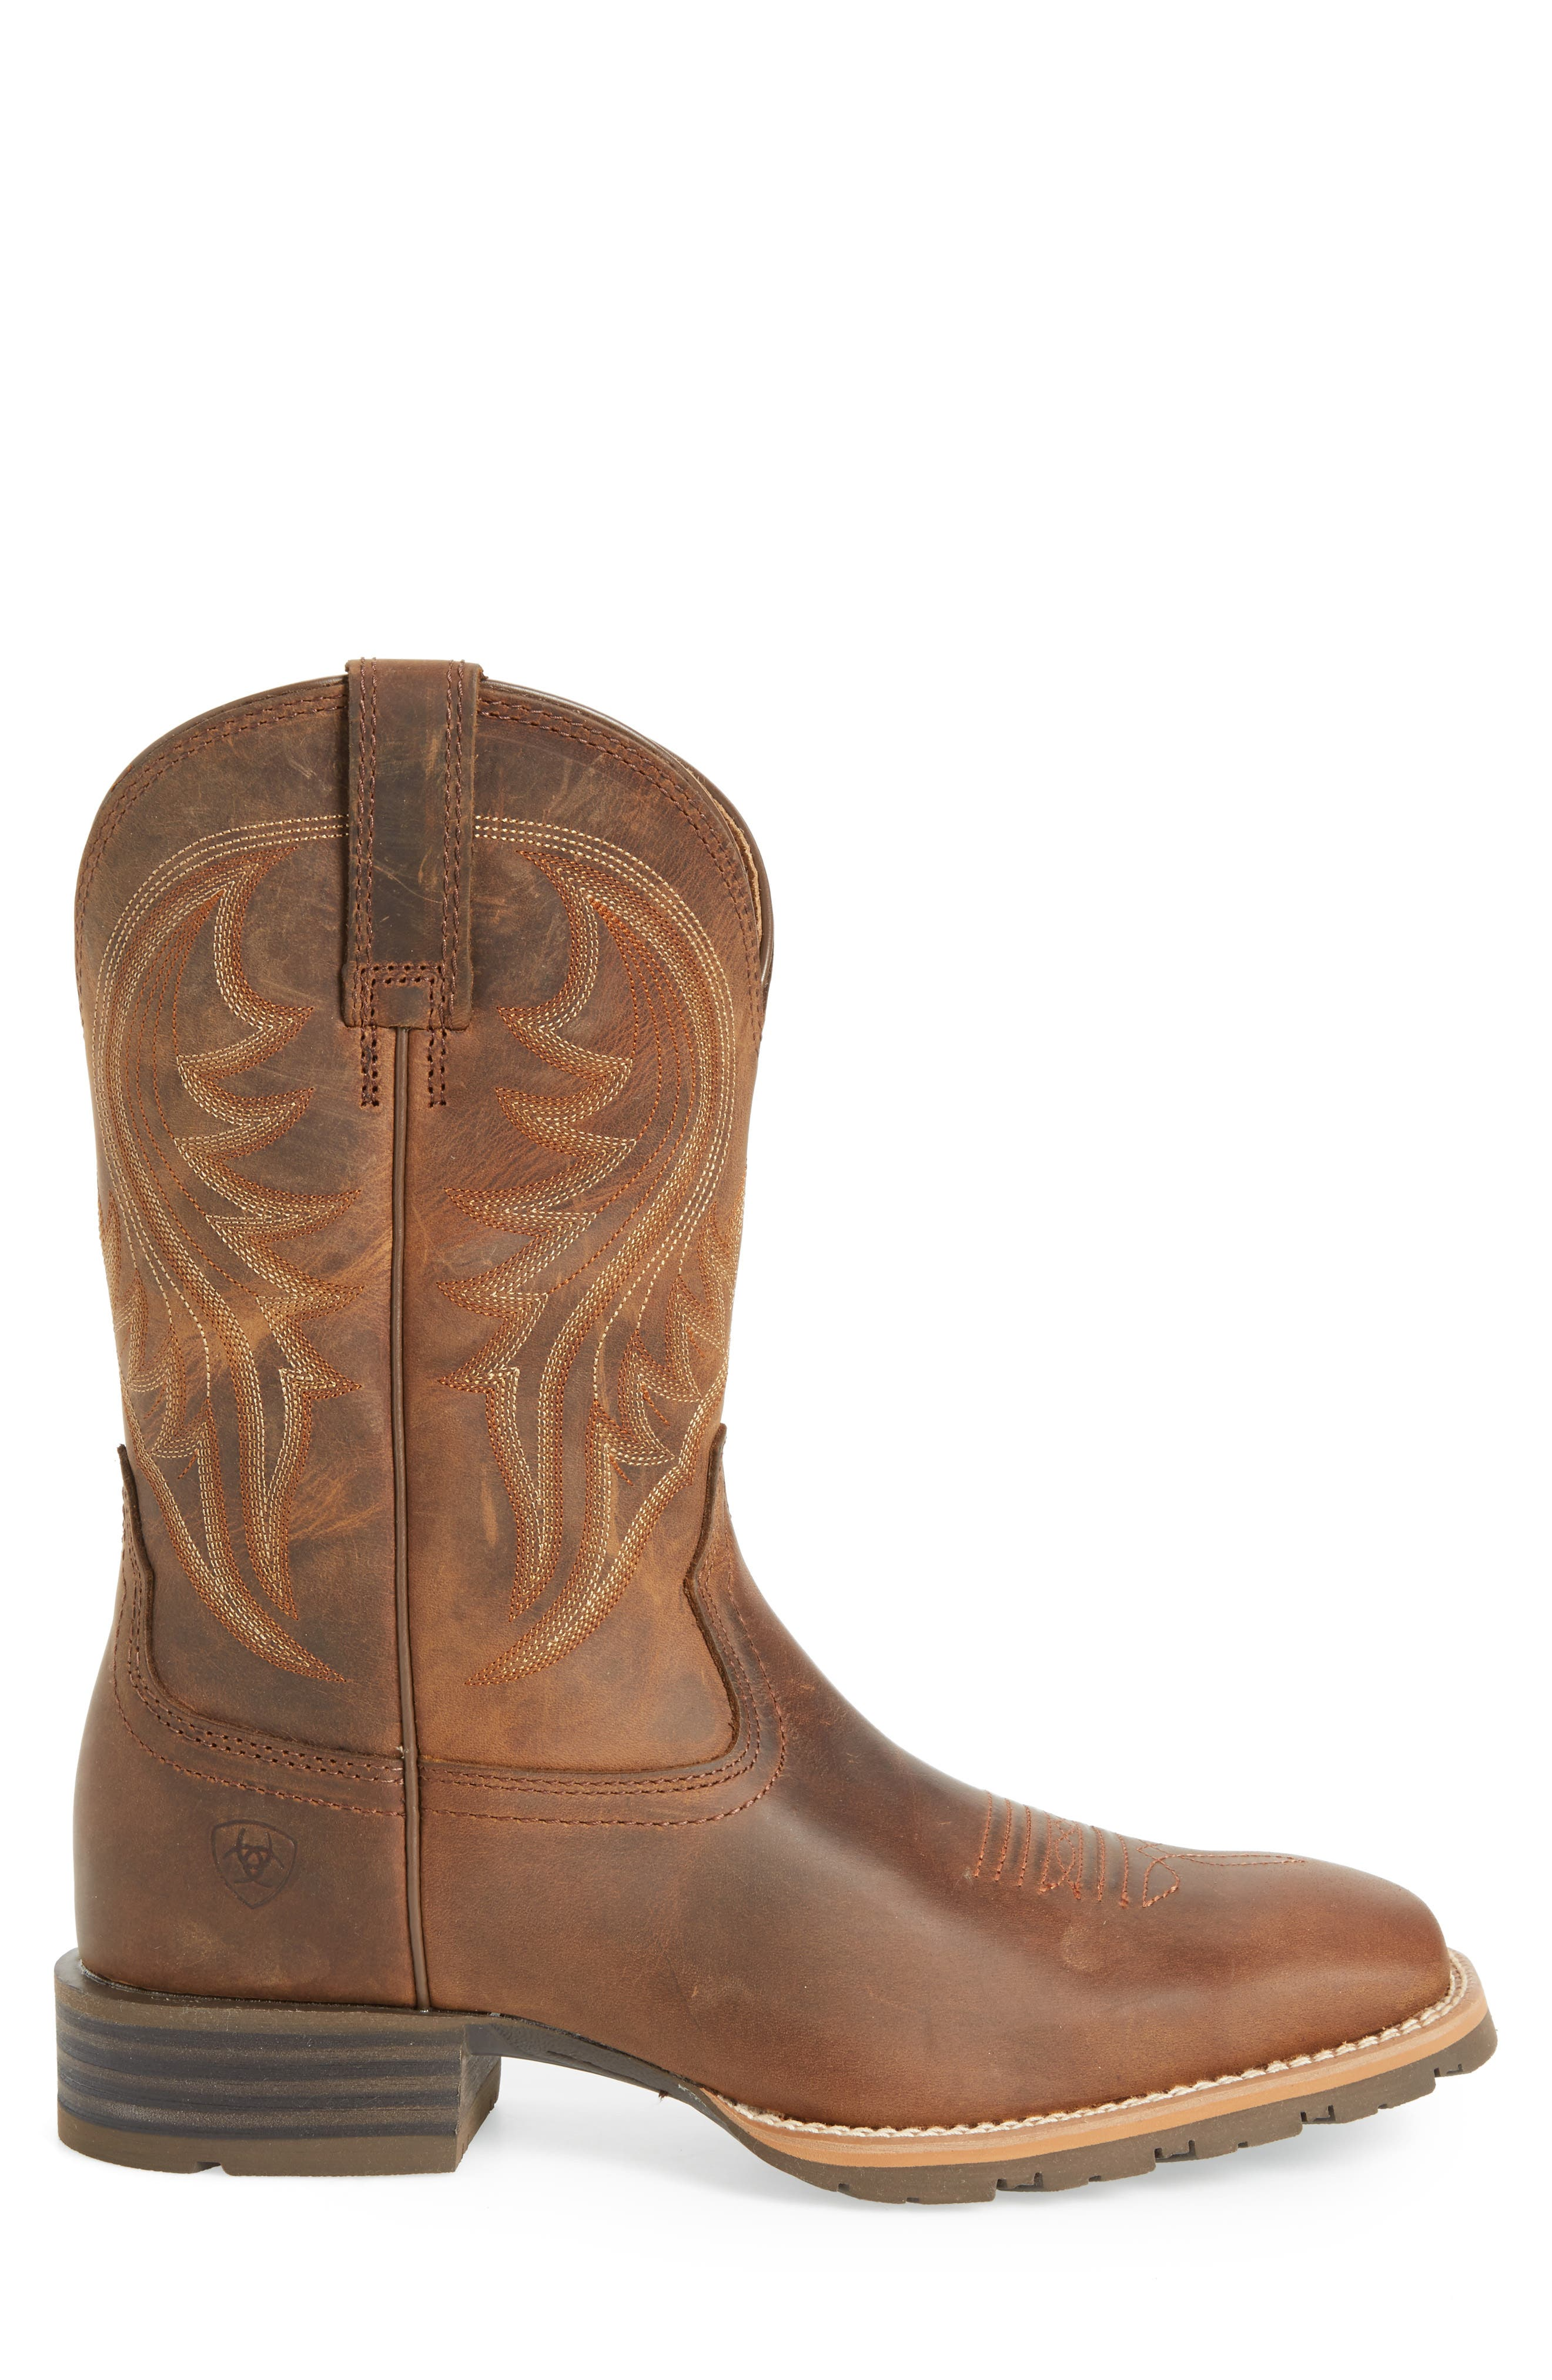 Hybrid Rancher Cowboy Boot,                             Alternate thumbnail 3, color,                             DISTRESSED BROWN LEATHER